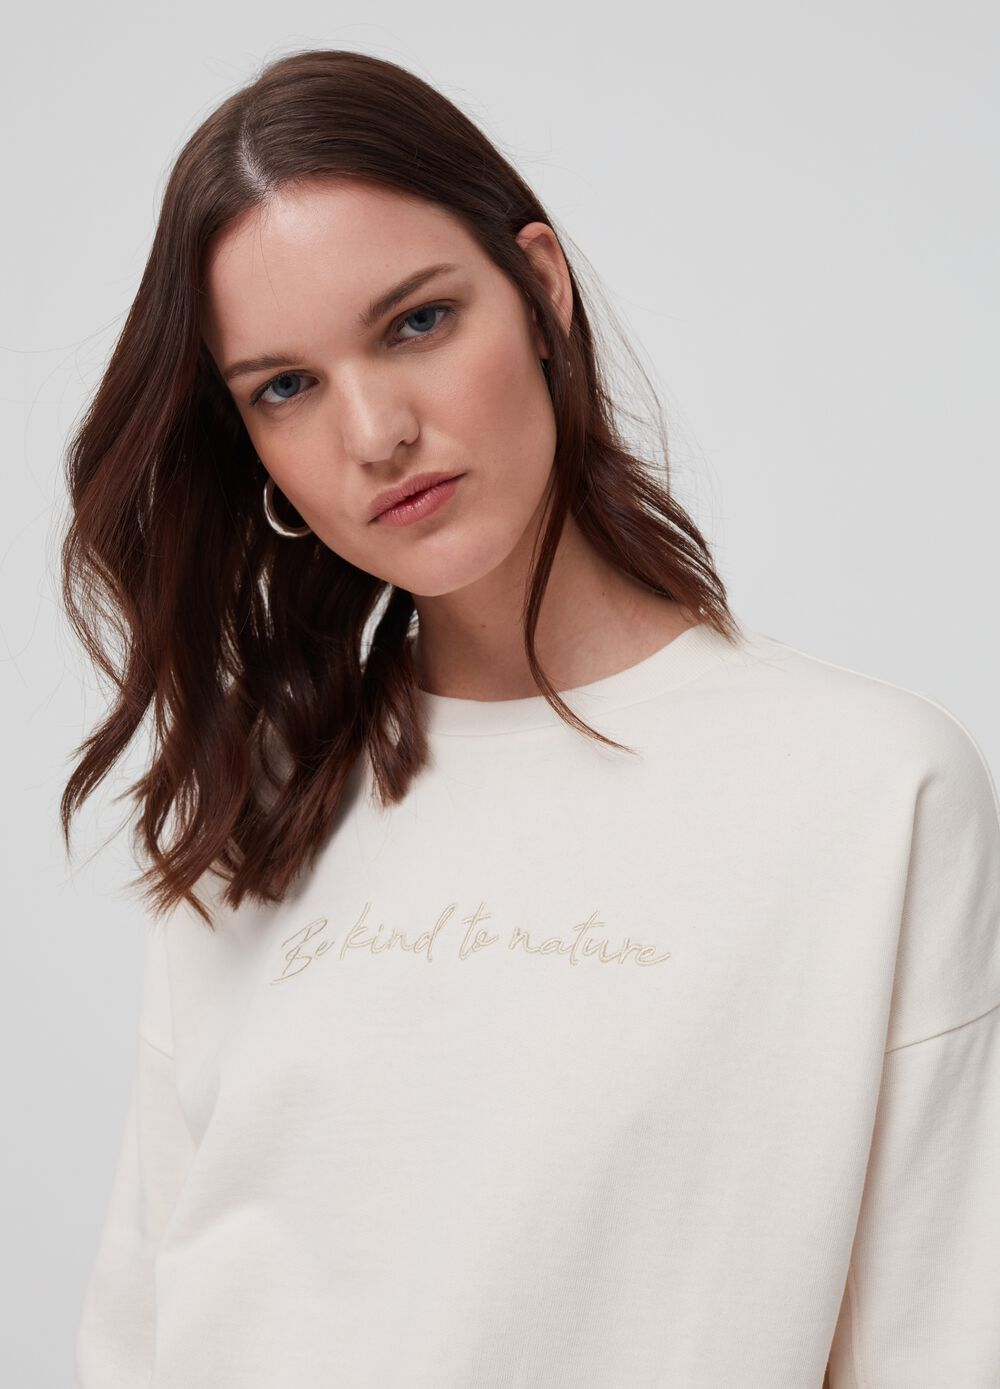 100% organic cotton sweatshirt with embroidery